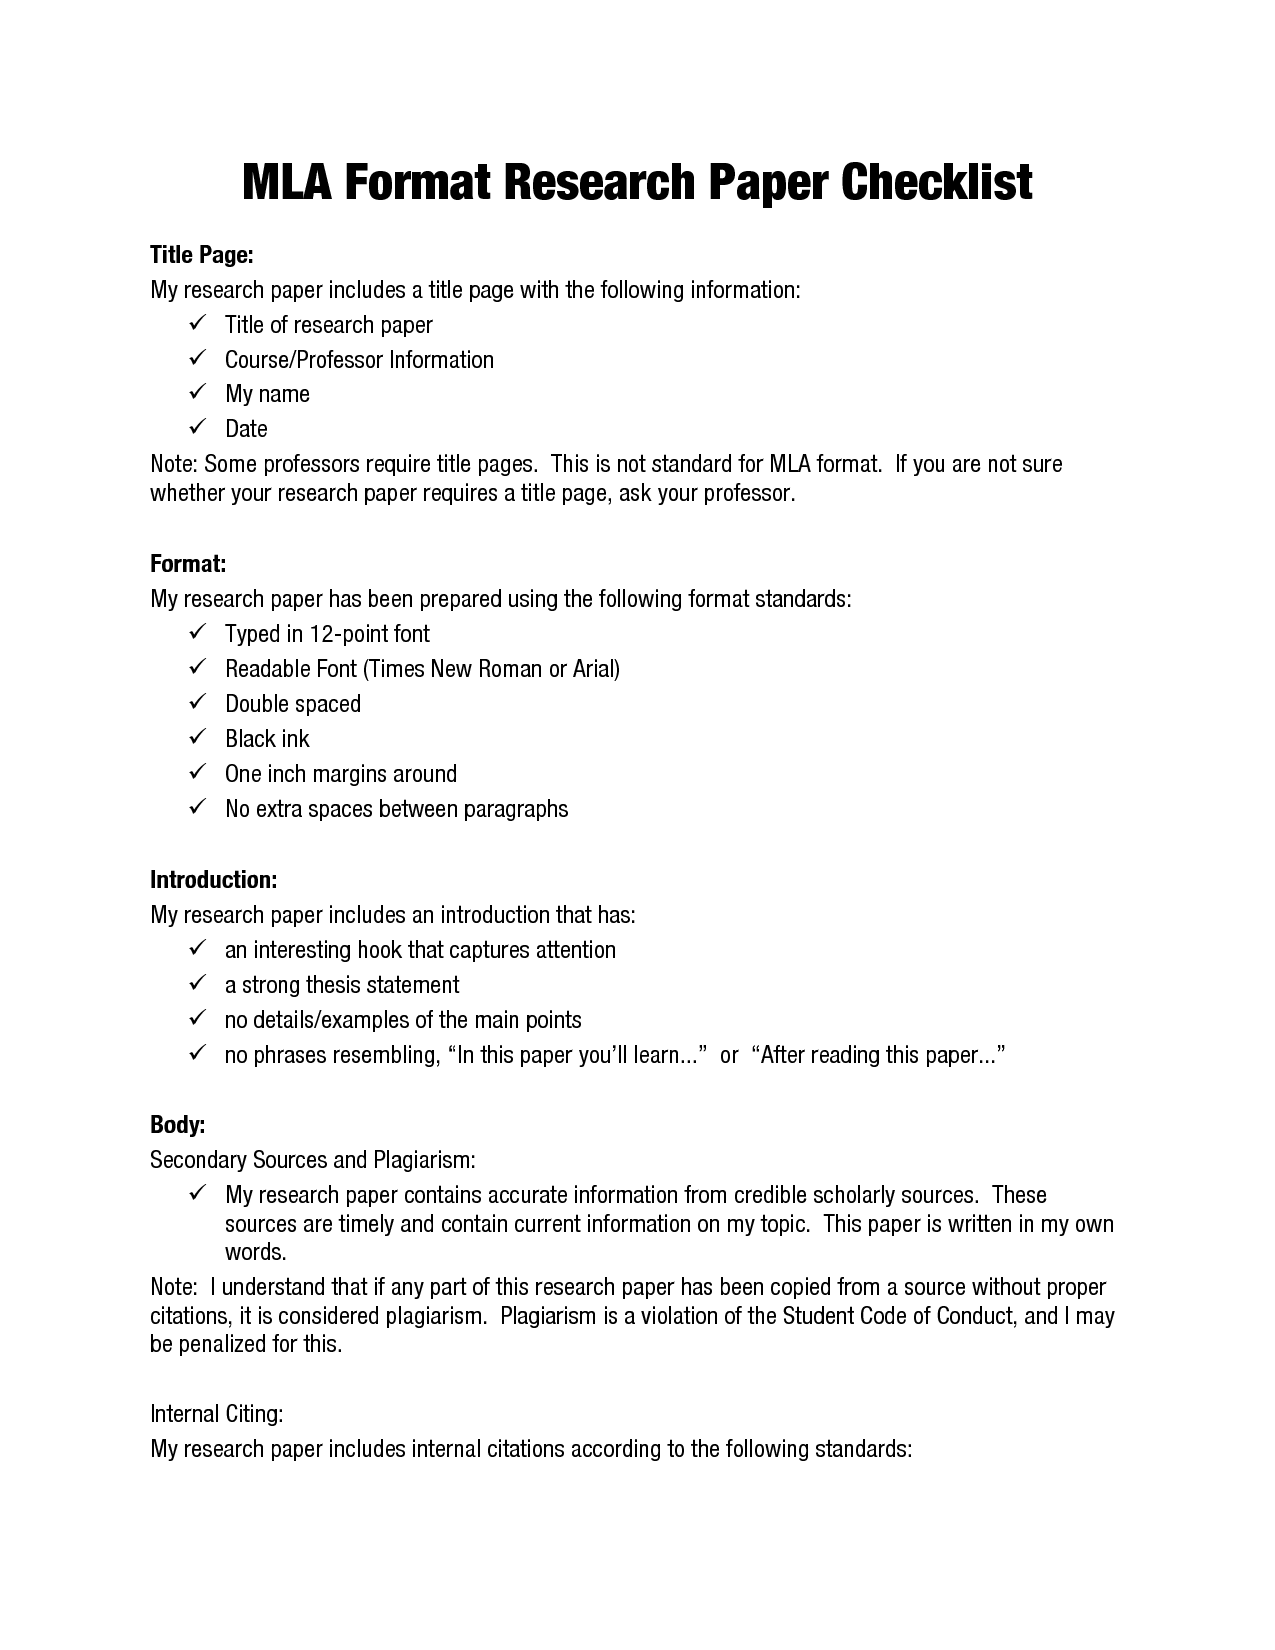 writing a mla research paper Research paper writing with updated 8th edition mla format information: this research paper writing unit includes everything you need to teach research paper writing and mla formatting and citations to your students.